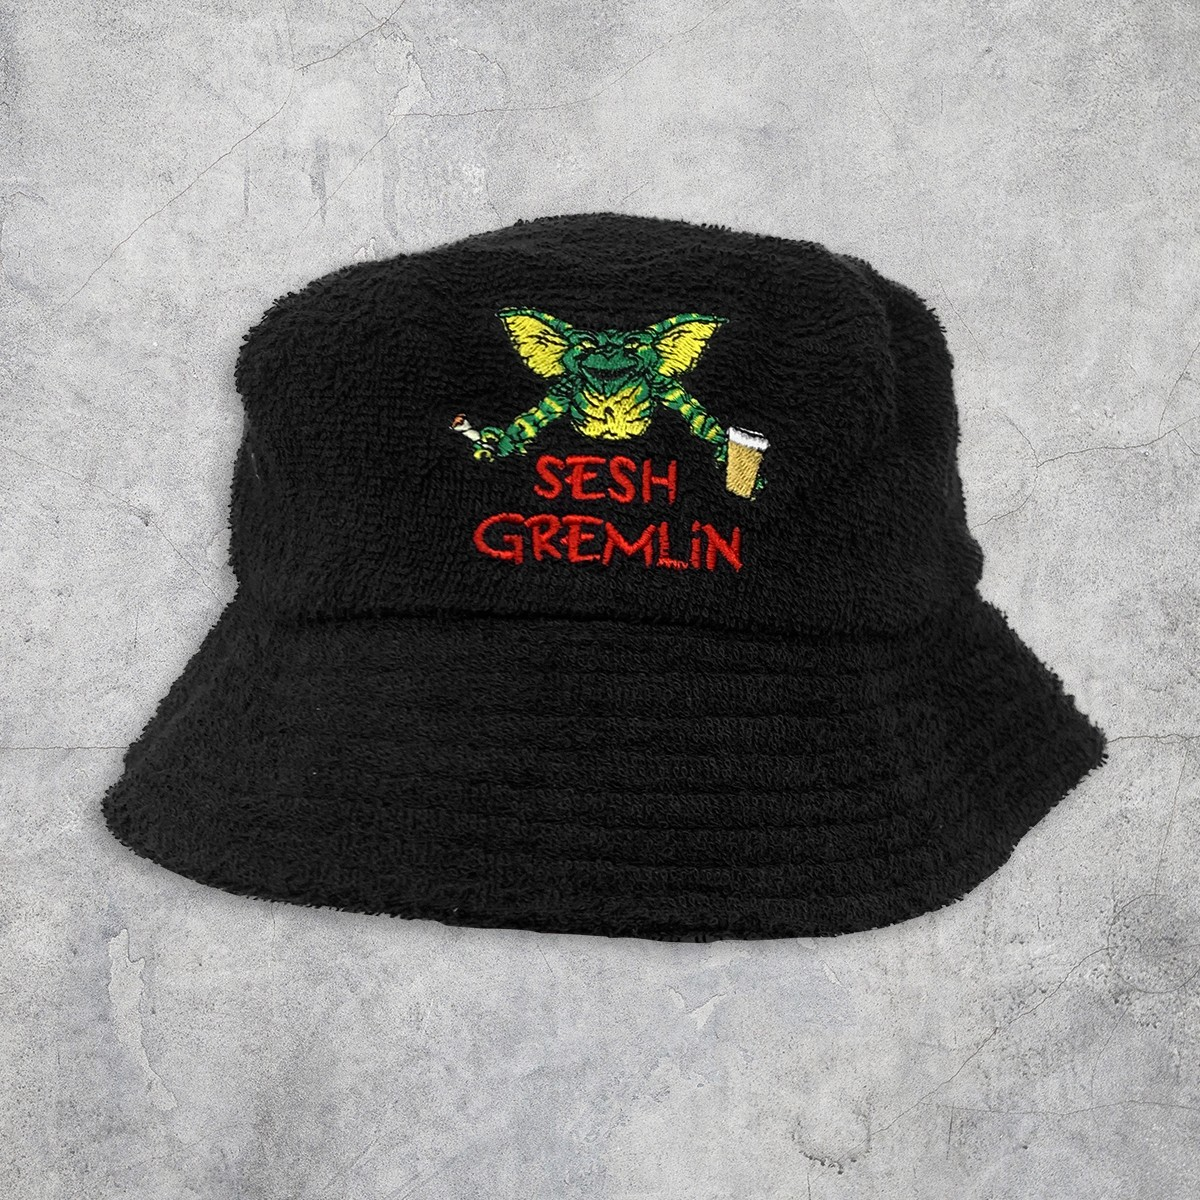 SESH GREMLIN TERRY TOWELLING BUCKET HAT